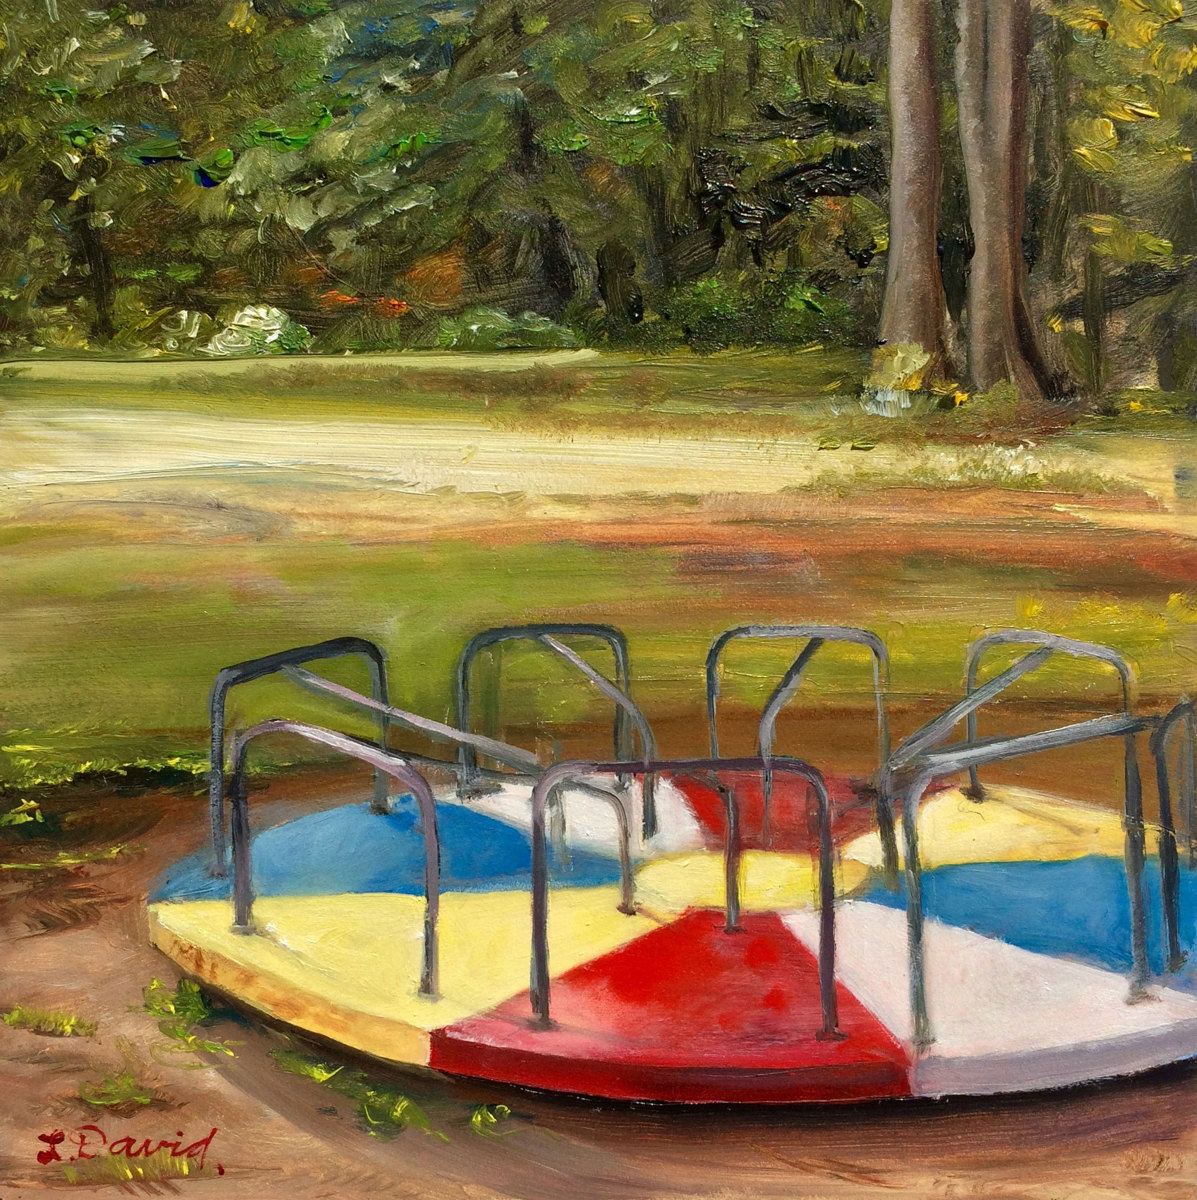 Merry-Go-Round (large view)